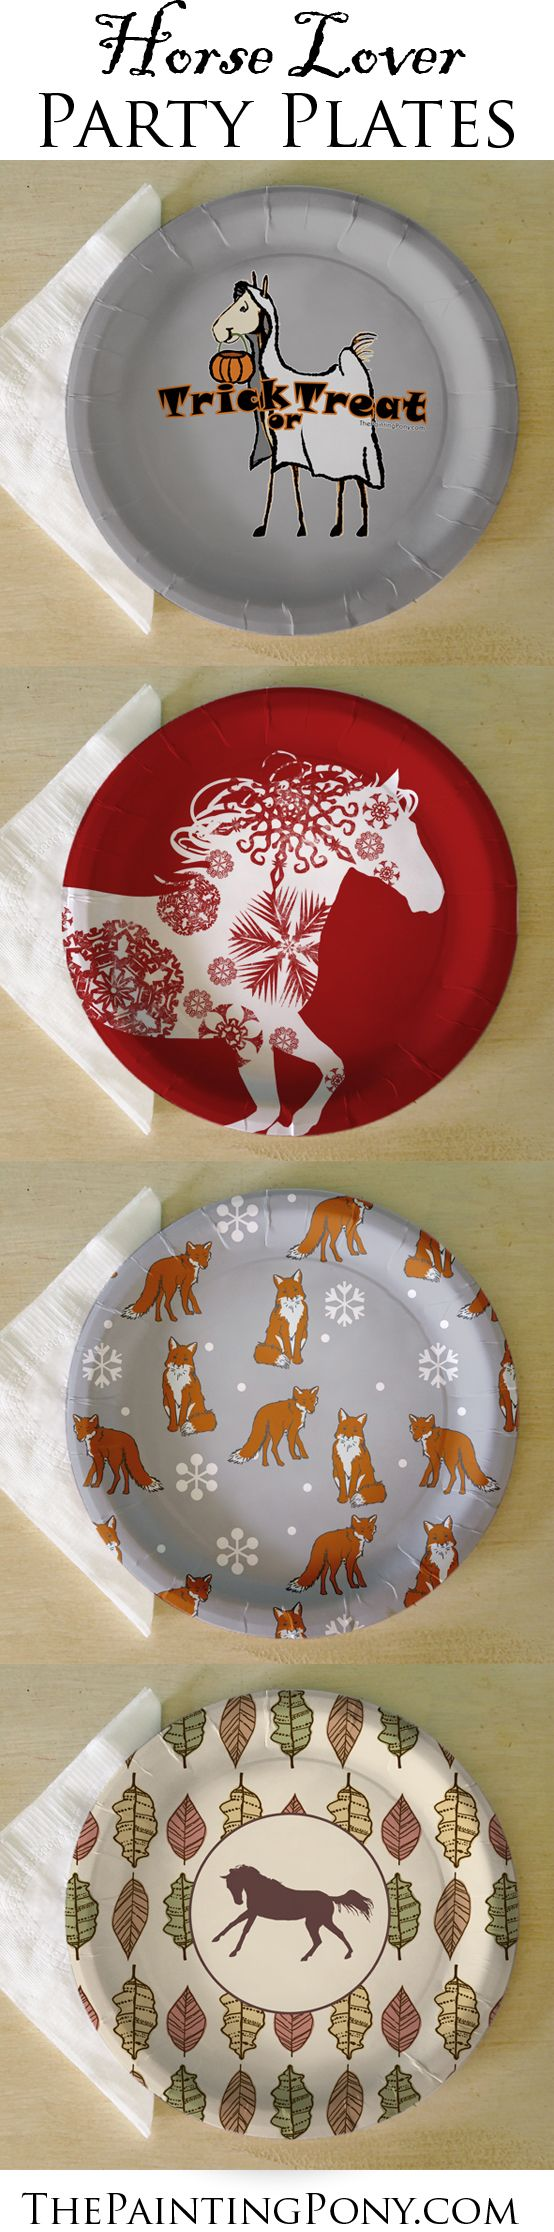 Paper Party Plates for the horse lover! CUTE equestrian themed paper plates for the barn party, wedding, Christmas parties, or thanksgiving dinner! Holiday brunch made easy and stylish! For when you want something special but don't want to wash the dishes! Anyone who loves horses, ponies, and horseback riding from hunter jumper, dressage, to barrel racing cowgirl style will enjoy these plates! Come in dessert and dinner sizes.